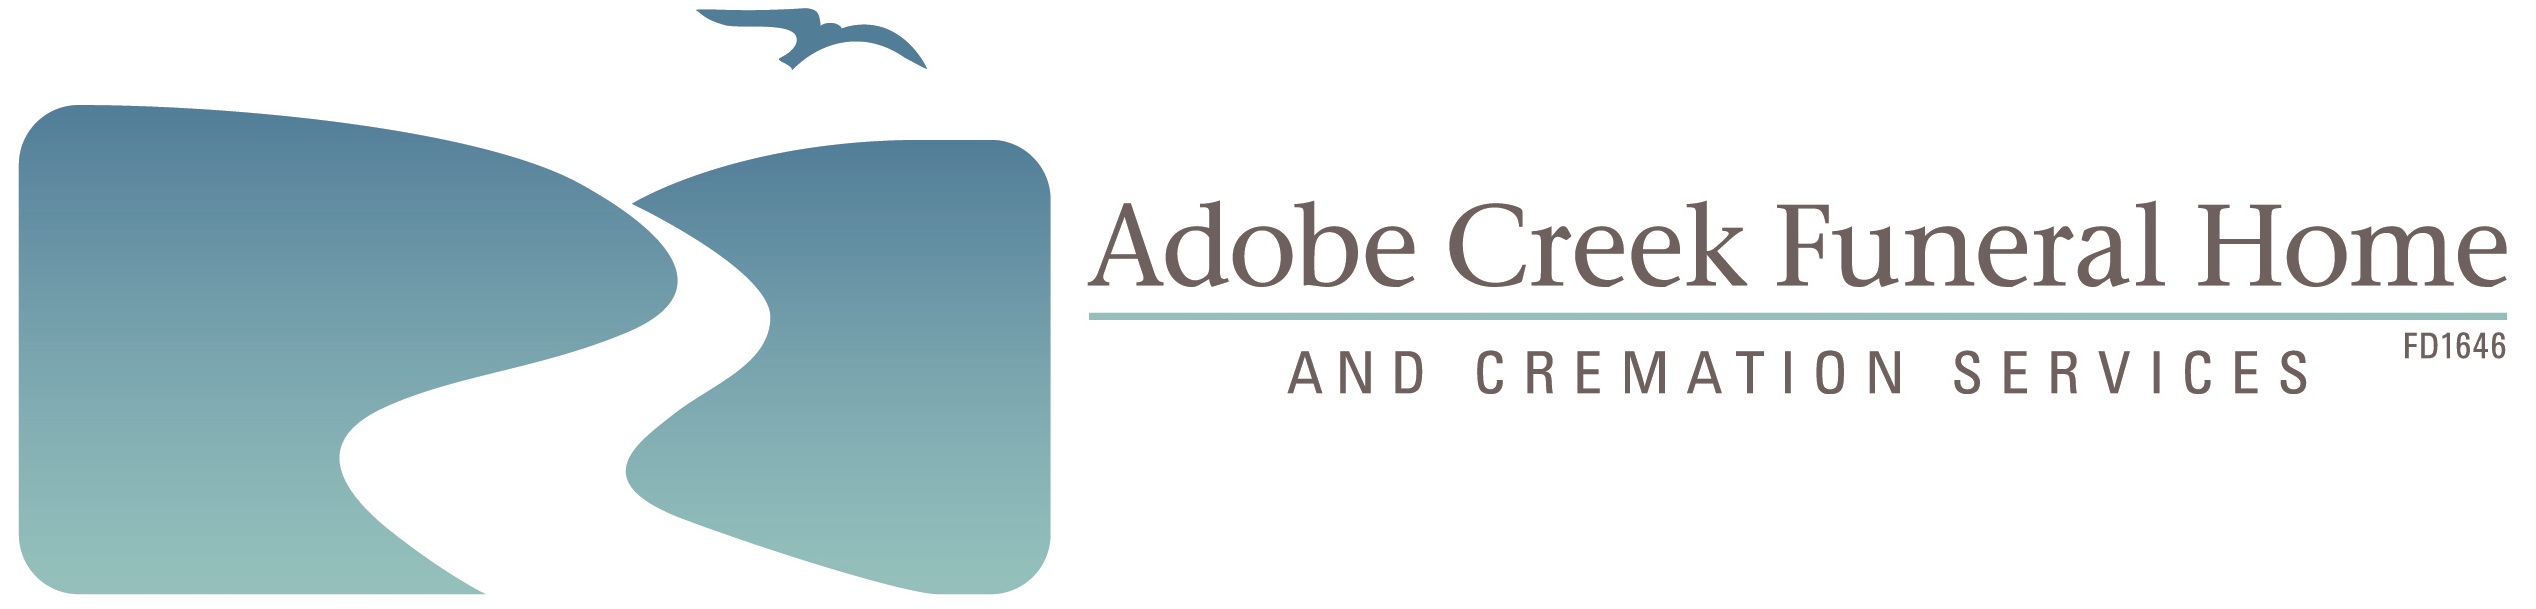 Adobe Creek Funeral Home